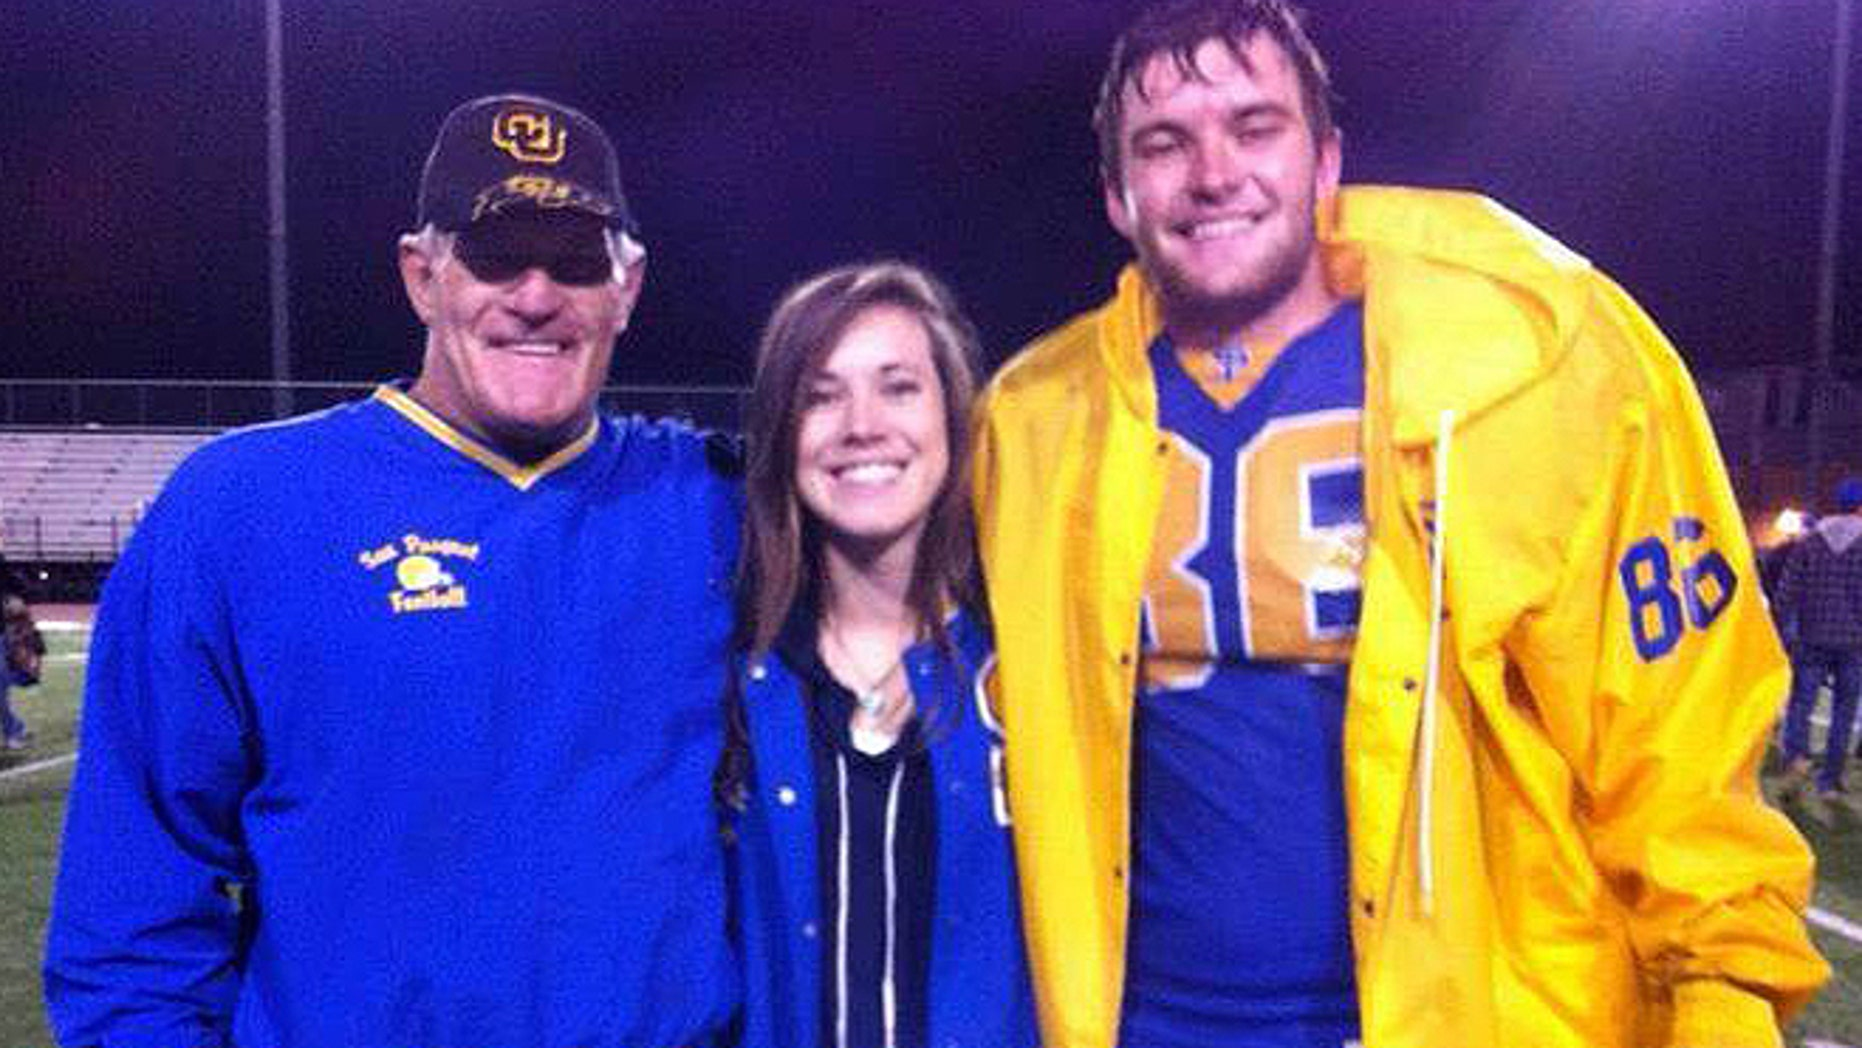 Steve Hendrickson, a former NFL linebacker who suffered at least 12 concussions during his 7-year career, stands with his daughter Courtney and son Kyle in an undated photograph. (Courtesy: Kyle Hendrickson)